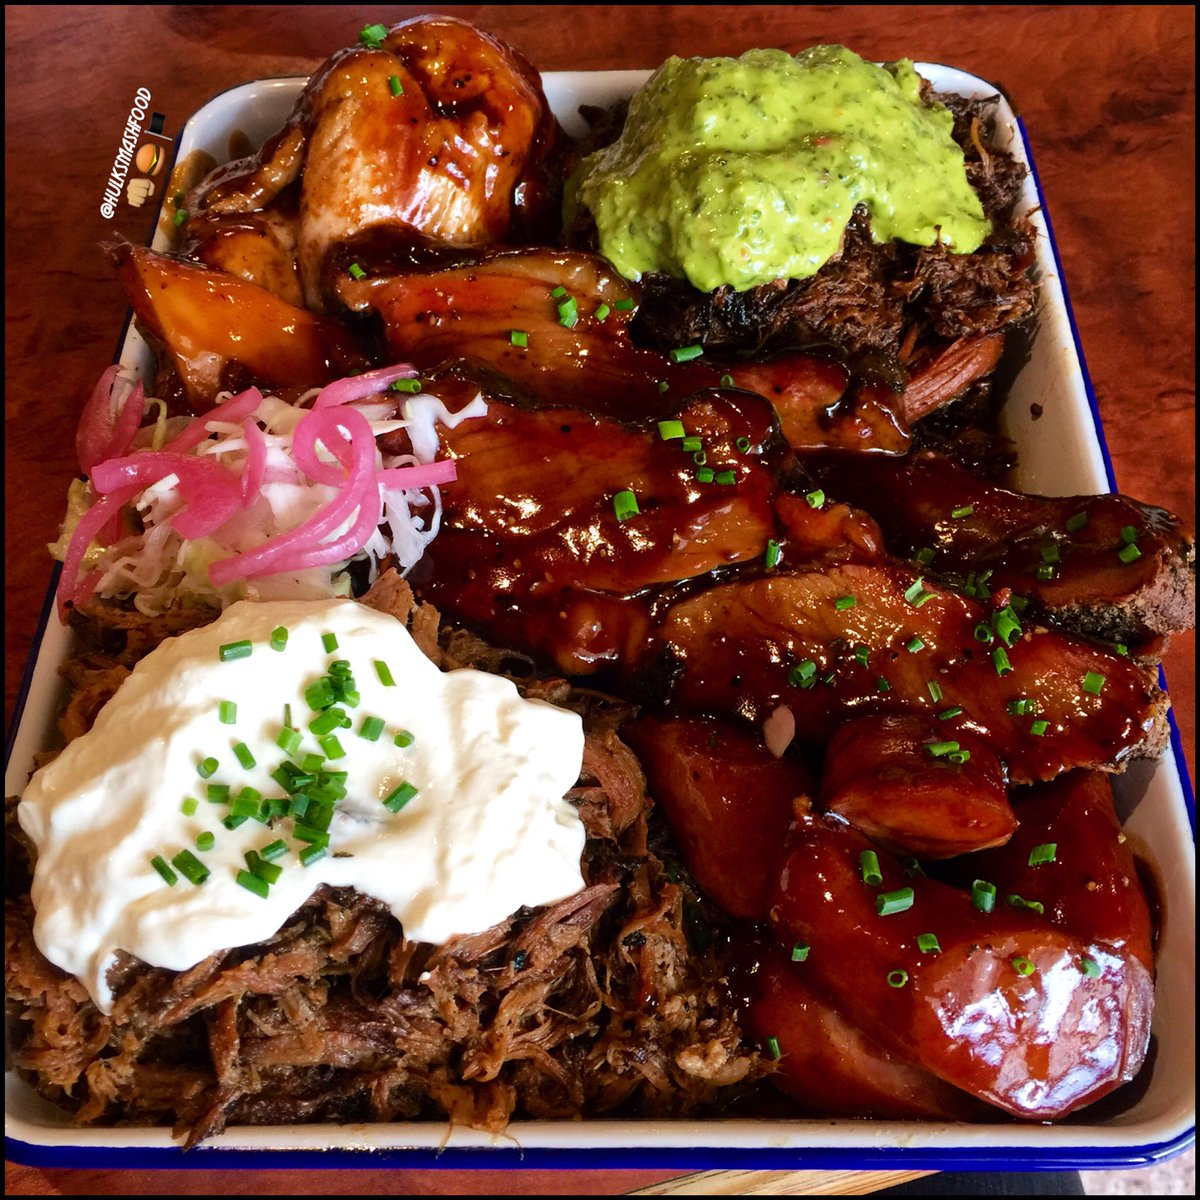 Hulksmashfood On Twitter The Slow Smoked Bbq Meat Platter From The Bbq Joint In Croydon South P Instagram Hulksmashfood